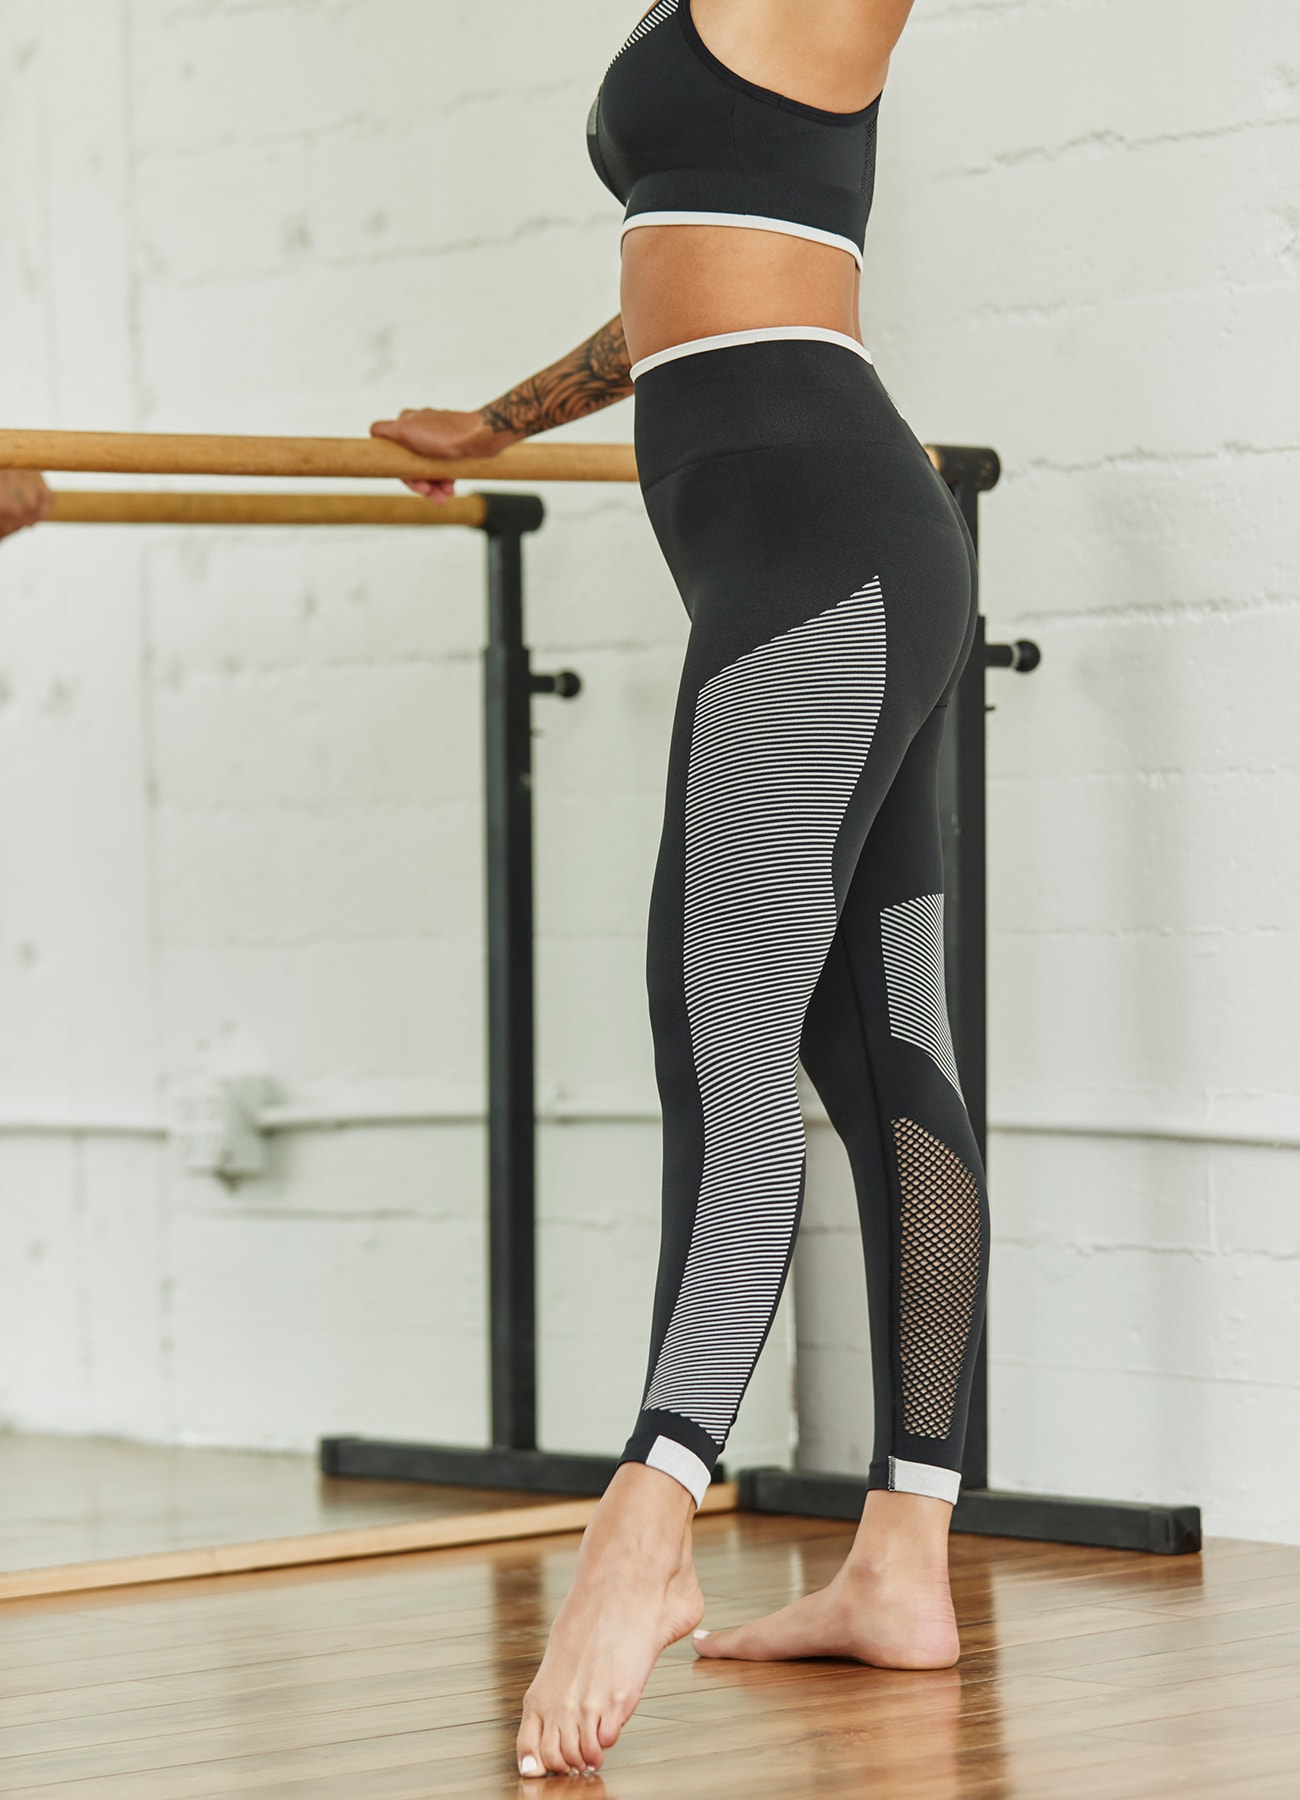 training-fw19-bras-and-tights-story-page-image-portrait-nov